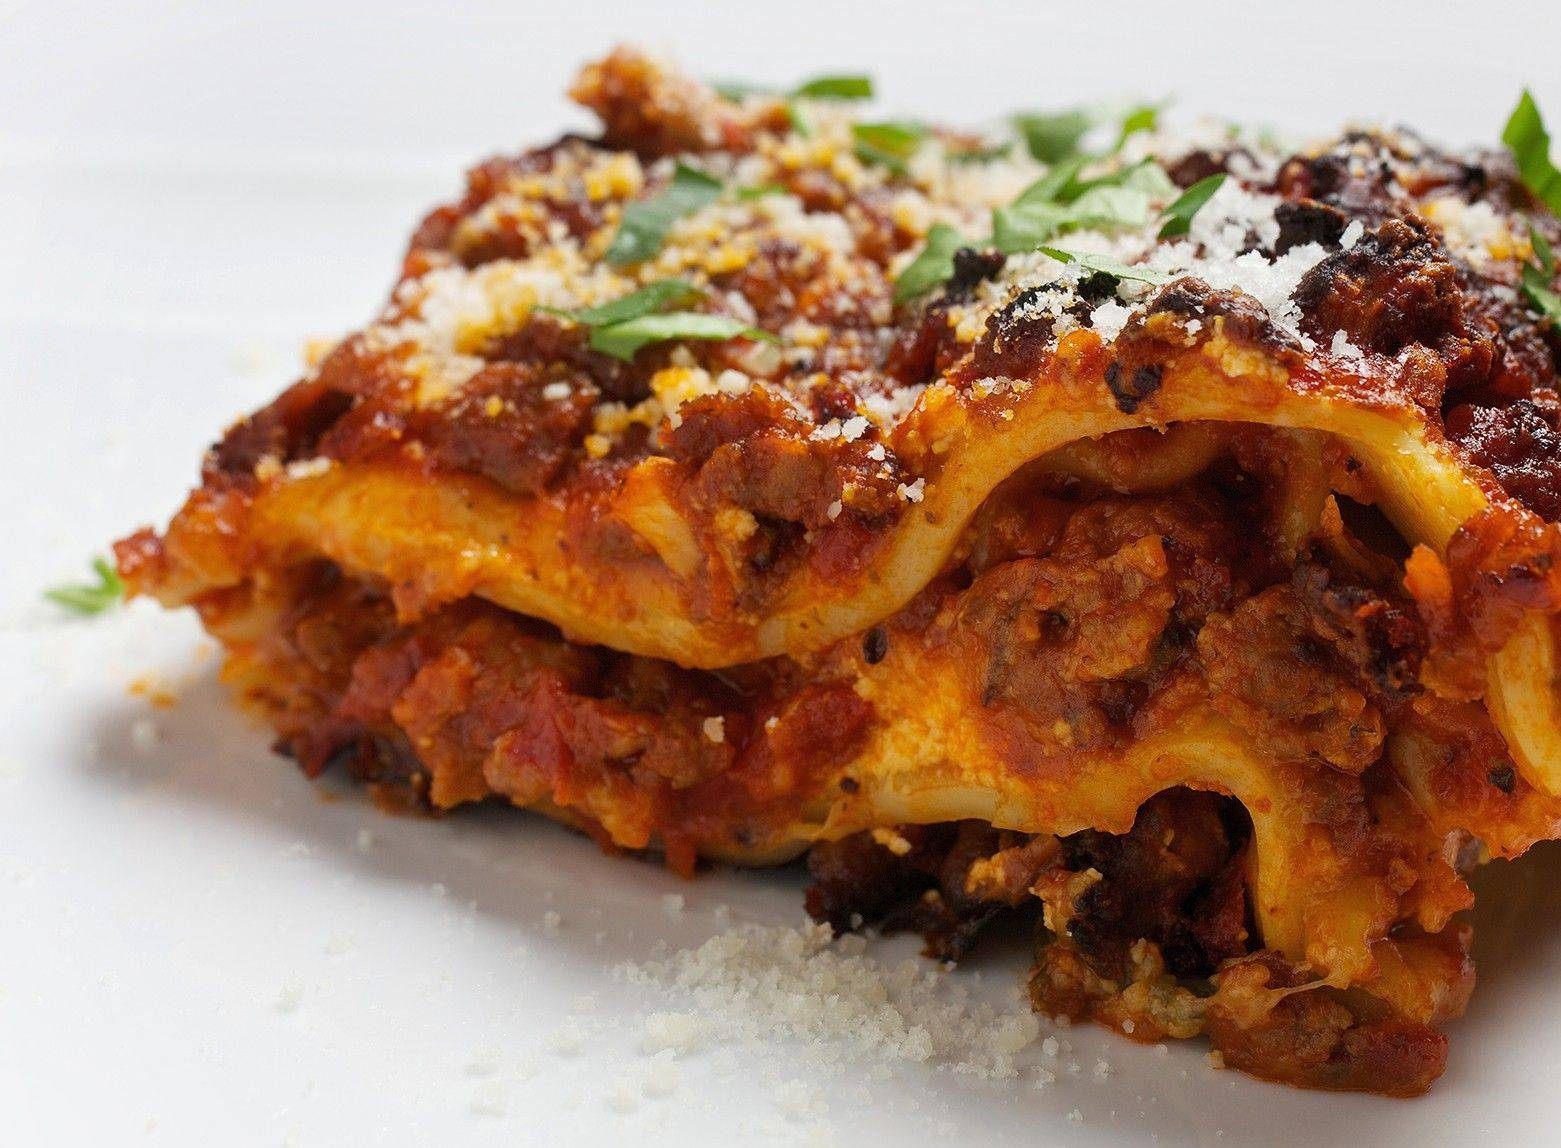 Lasagna for 12 million, please